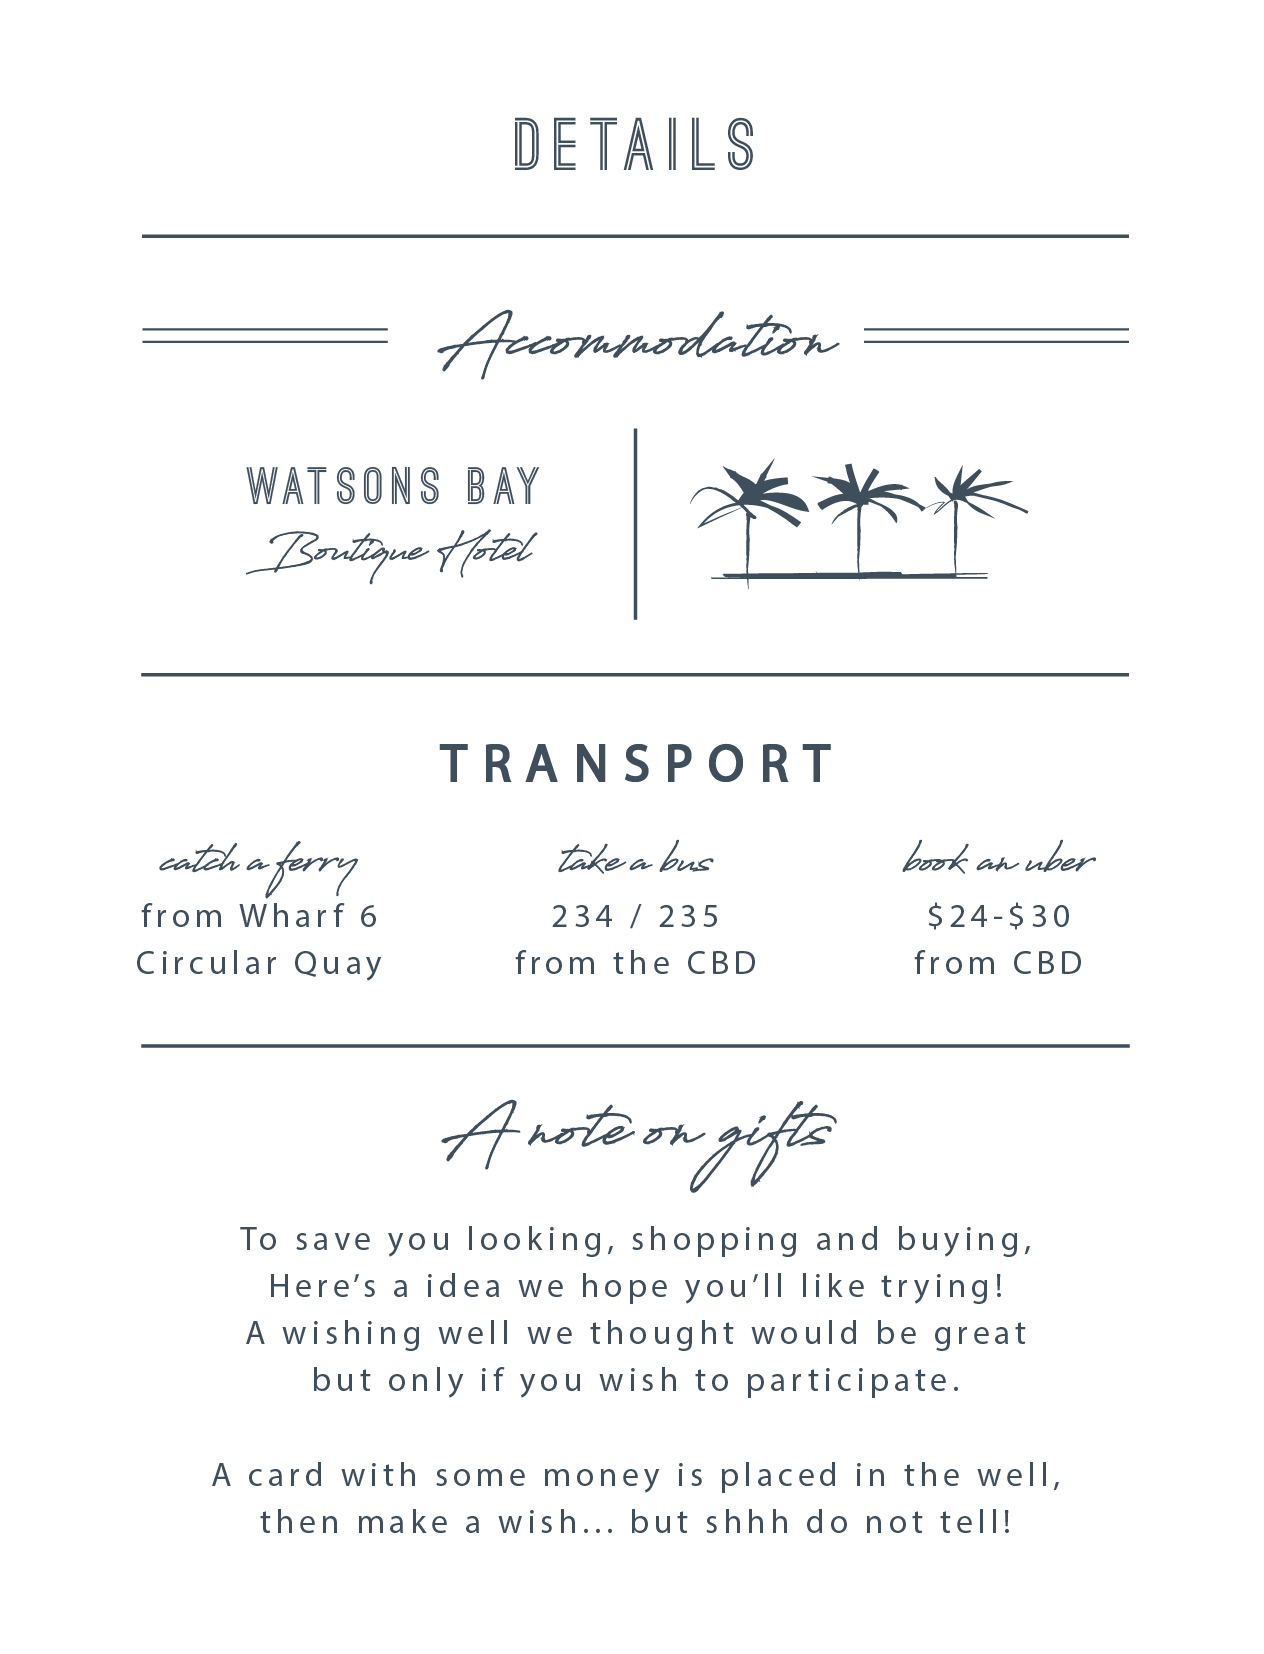 Watsons Bay Hotel | DP | Information Cards